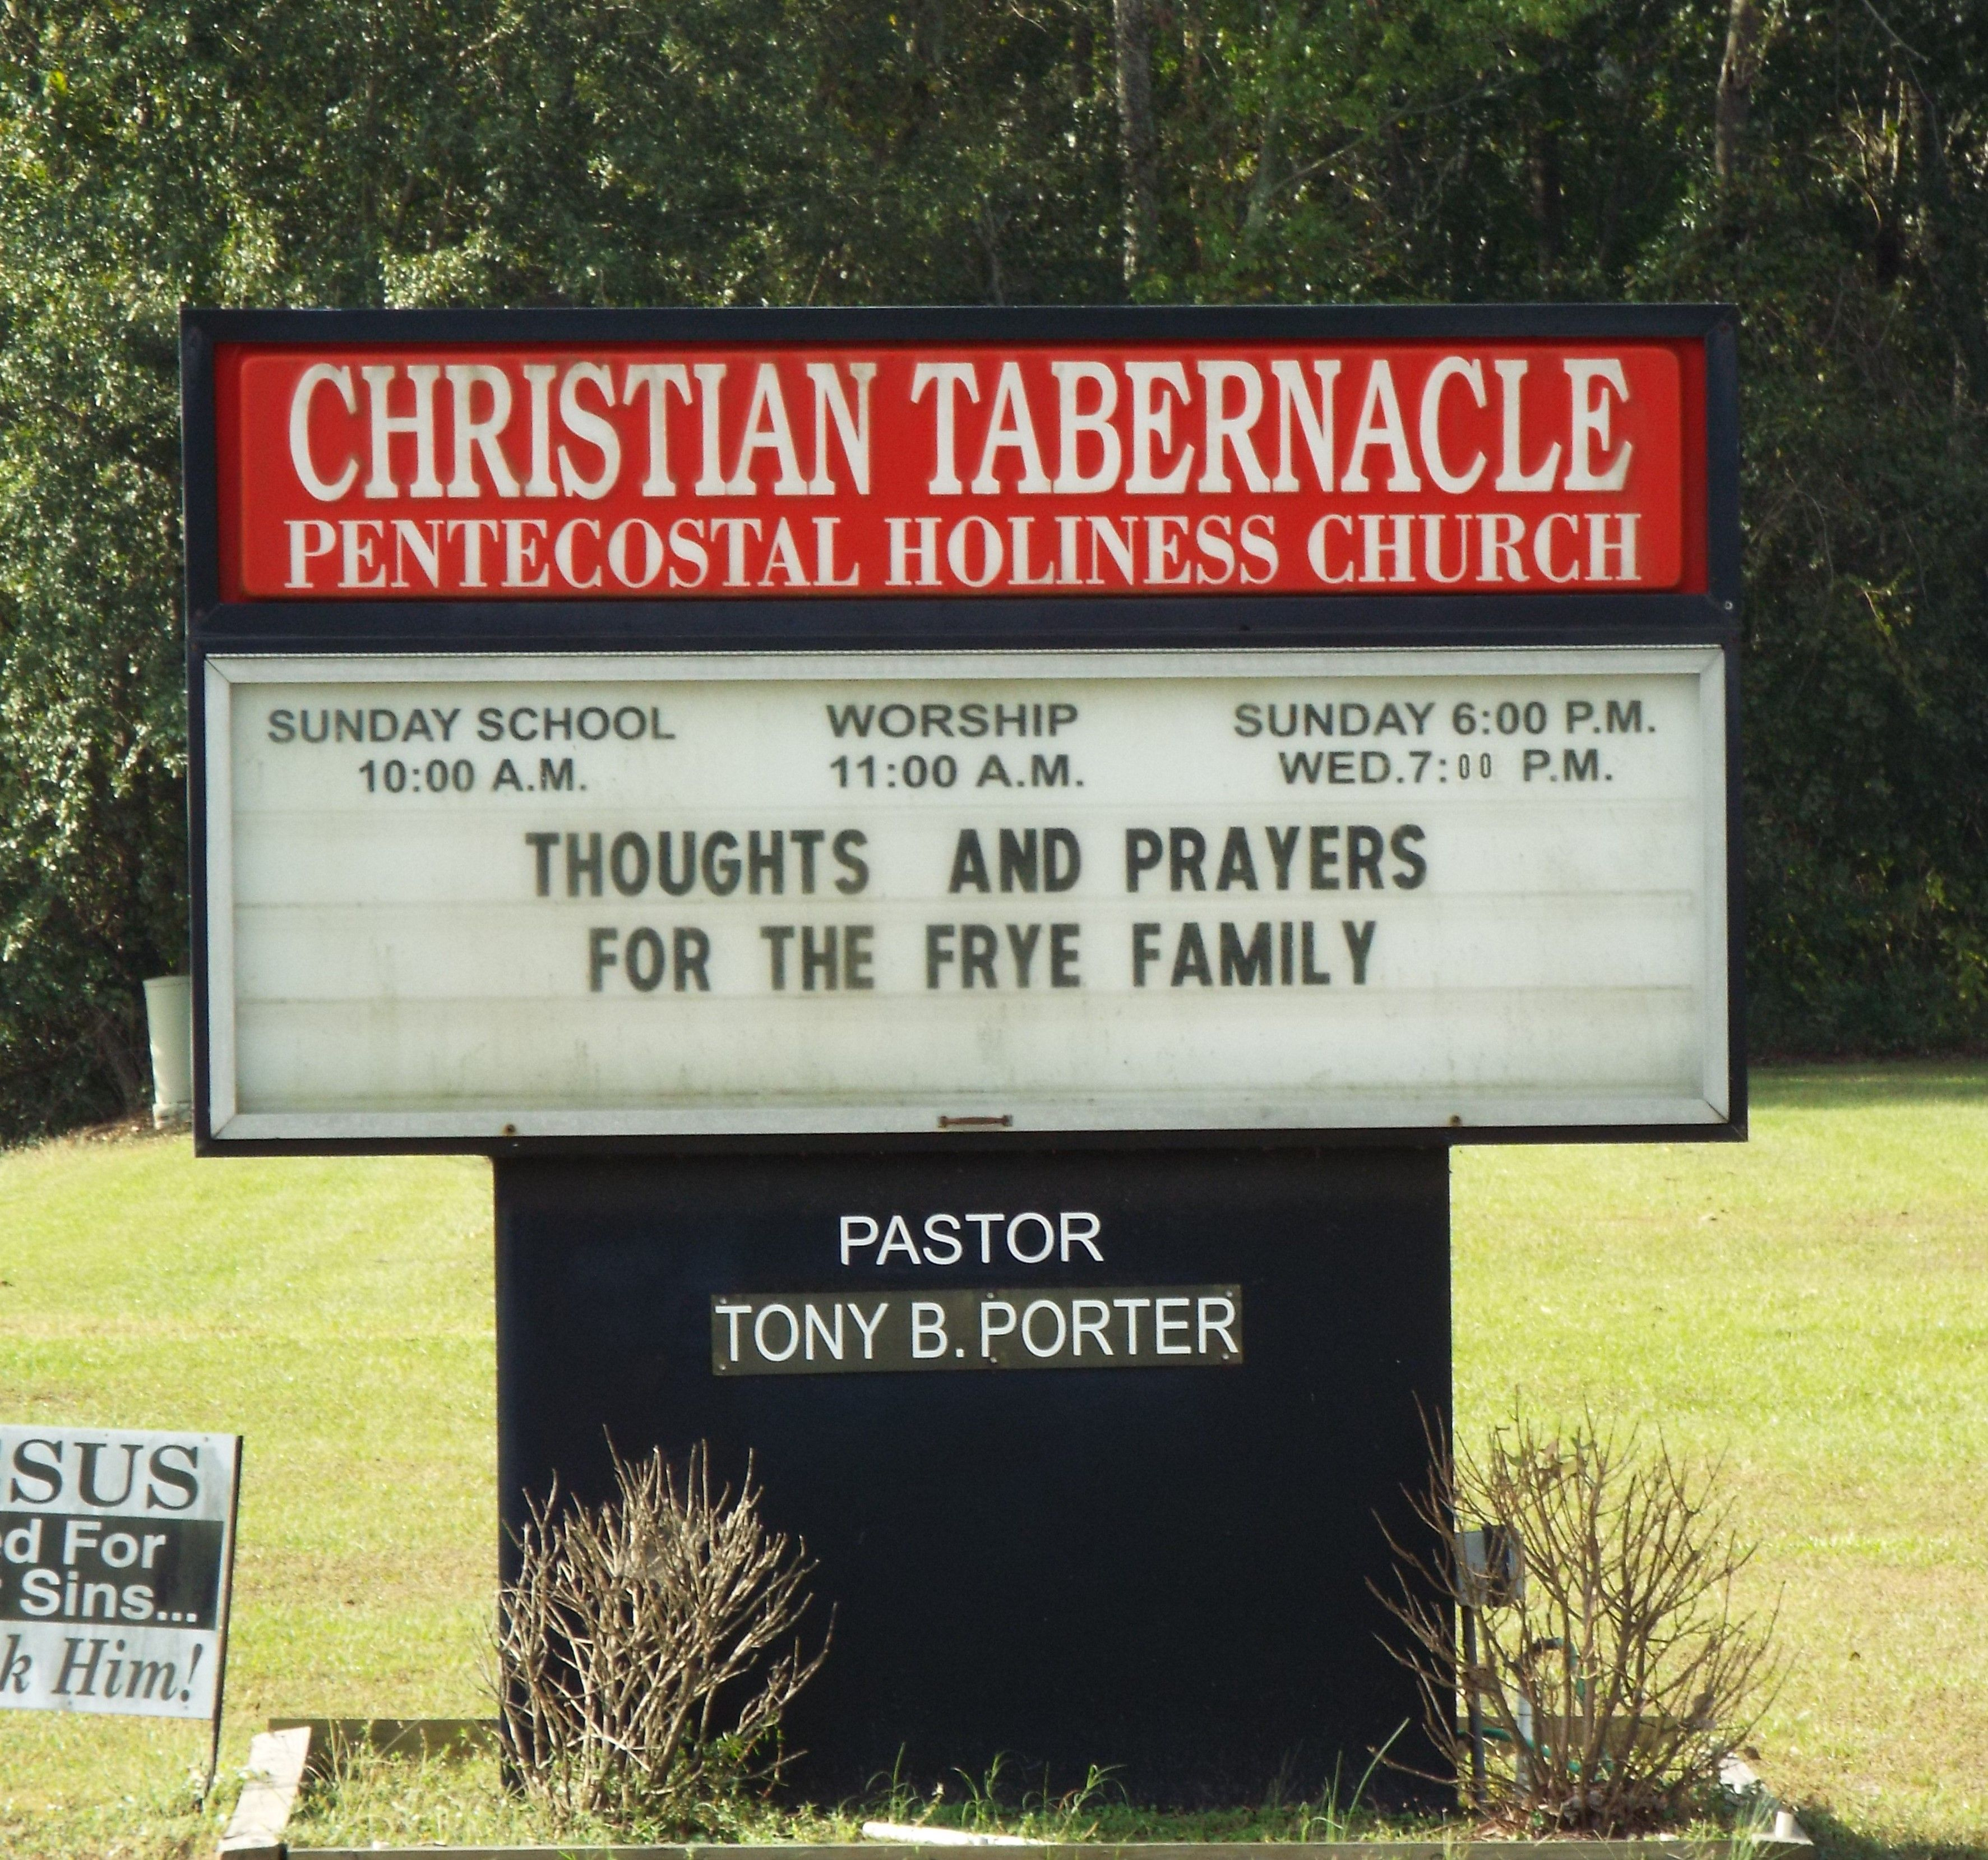 Christian Tabernacle Pentecostal Holiness Church in Sumter